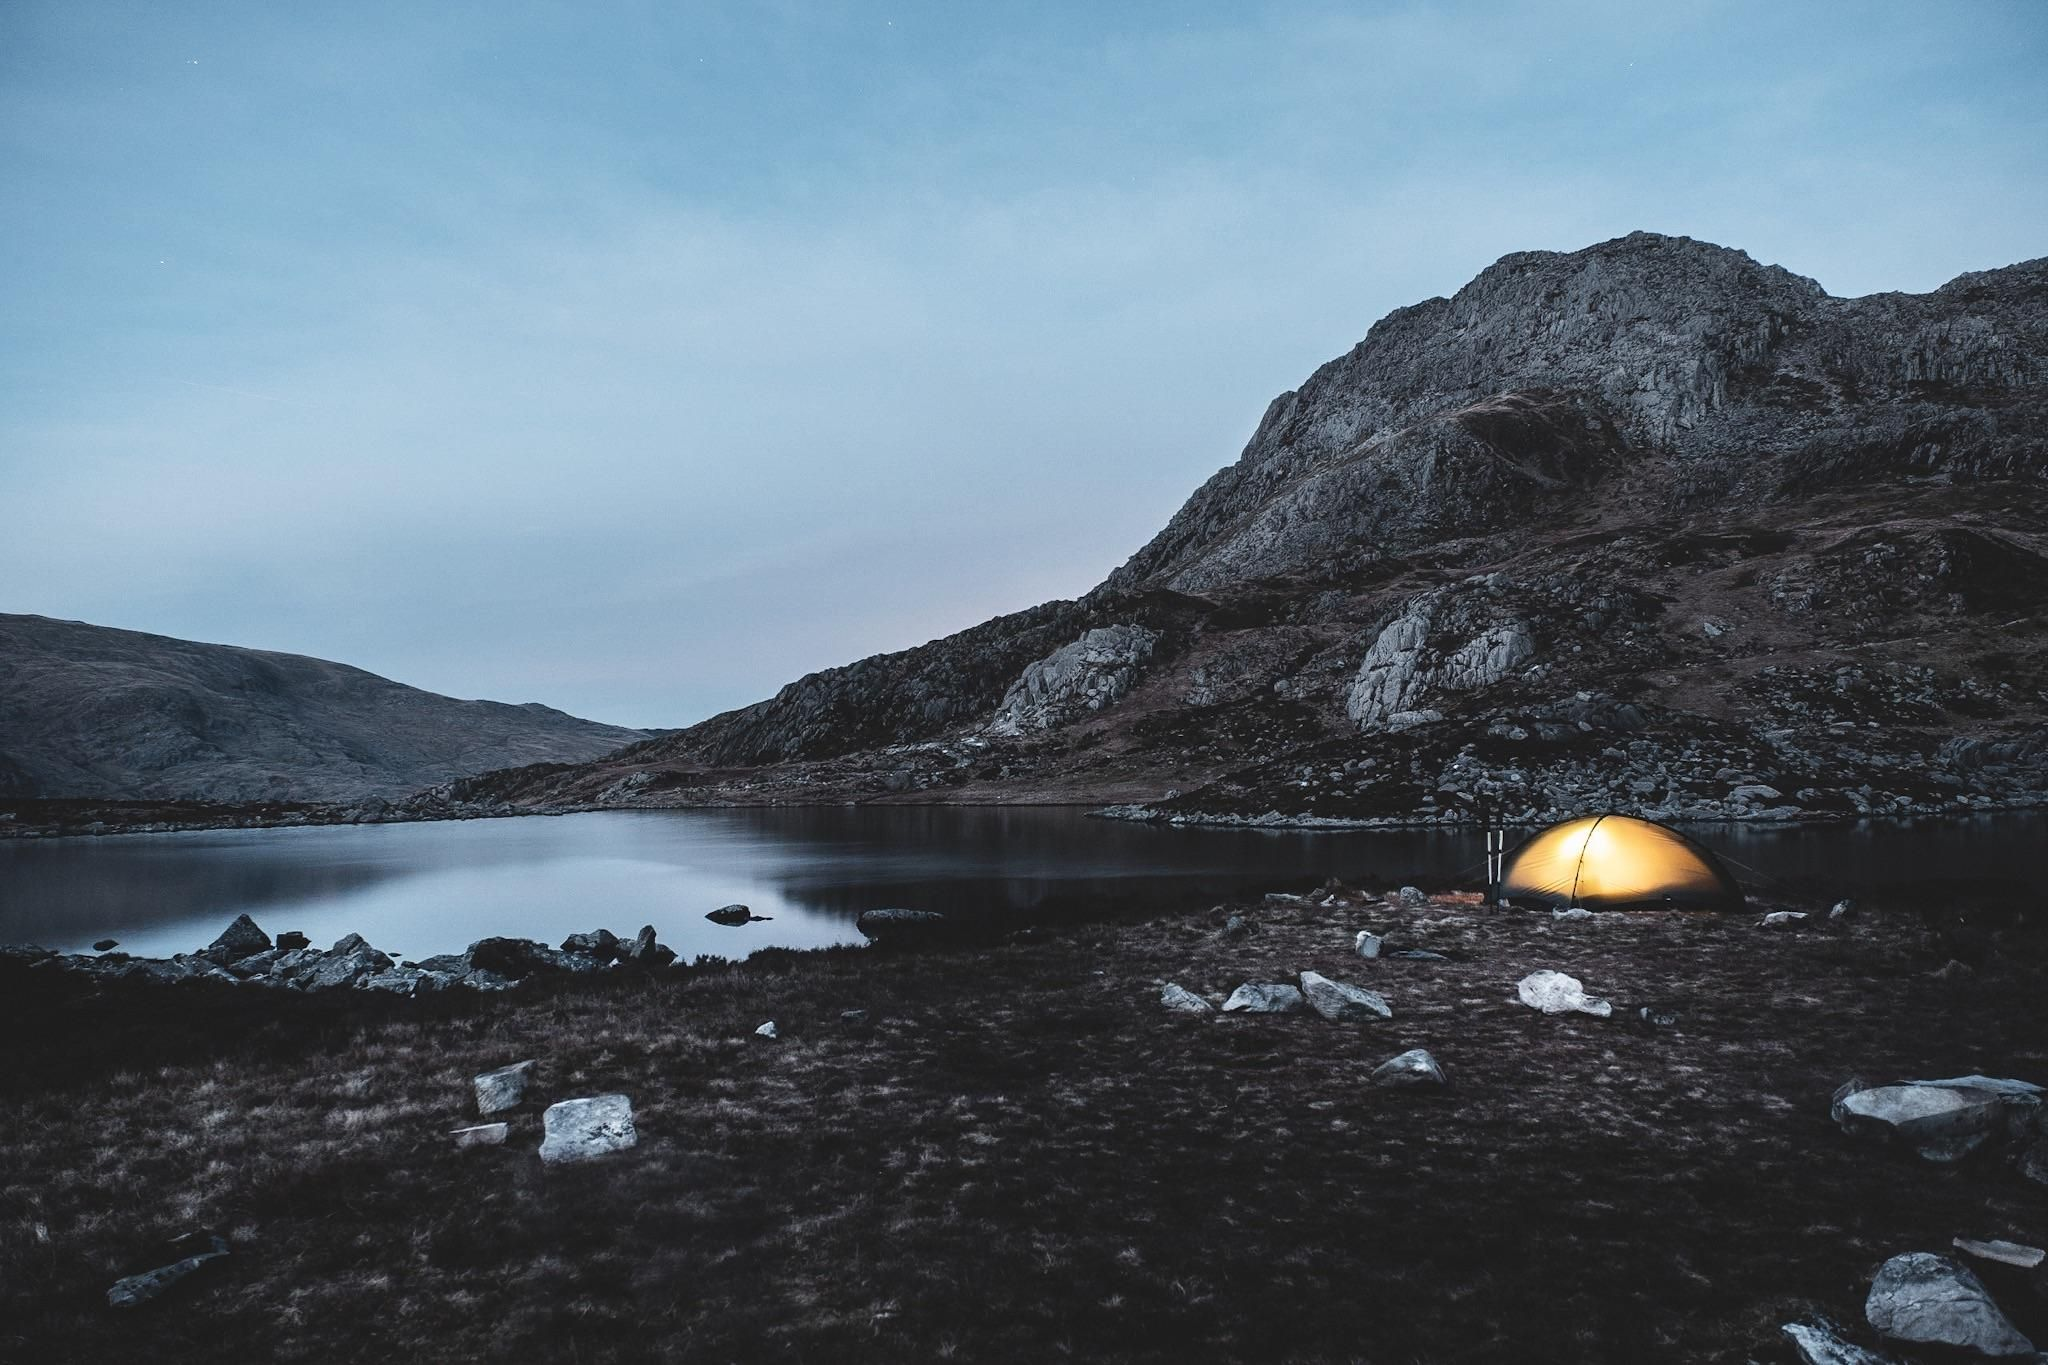 Pin by Dan Adventurer on Camping | Snowdonia, Camping